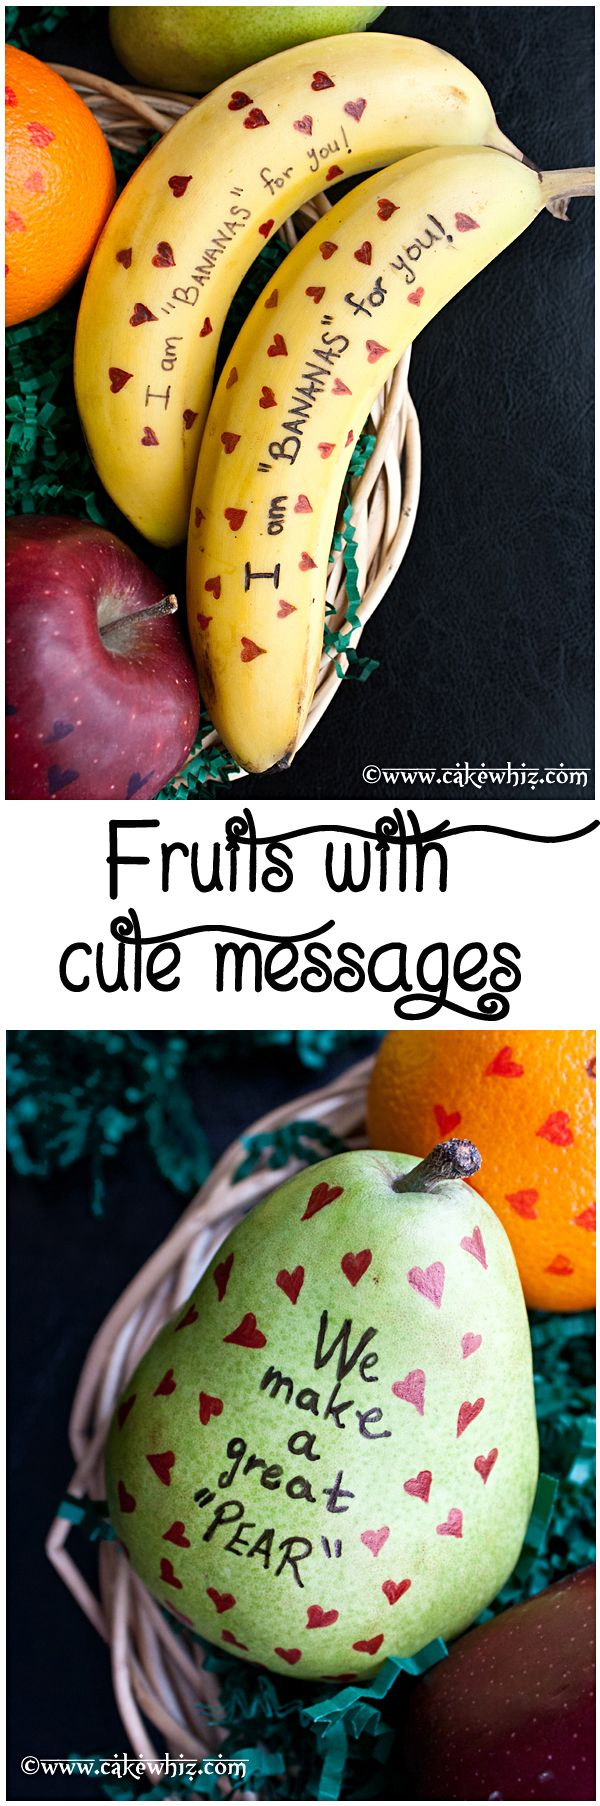 FRUITS with cute messages... fun to make with kids or surprise them by putting these adorable fruits in their school lunch boxes or even hubby's lunch box :)